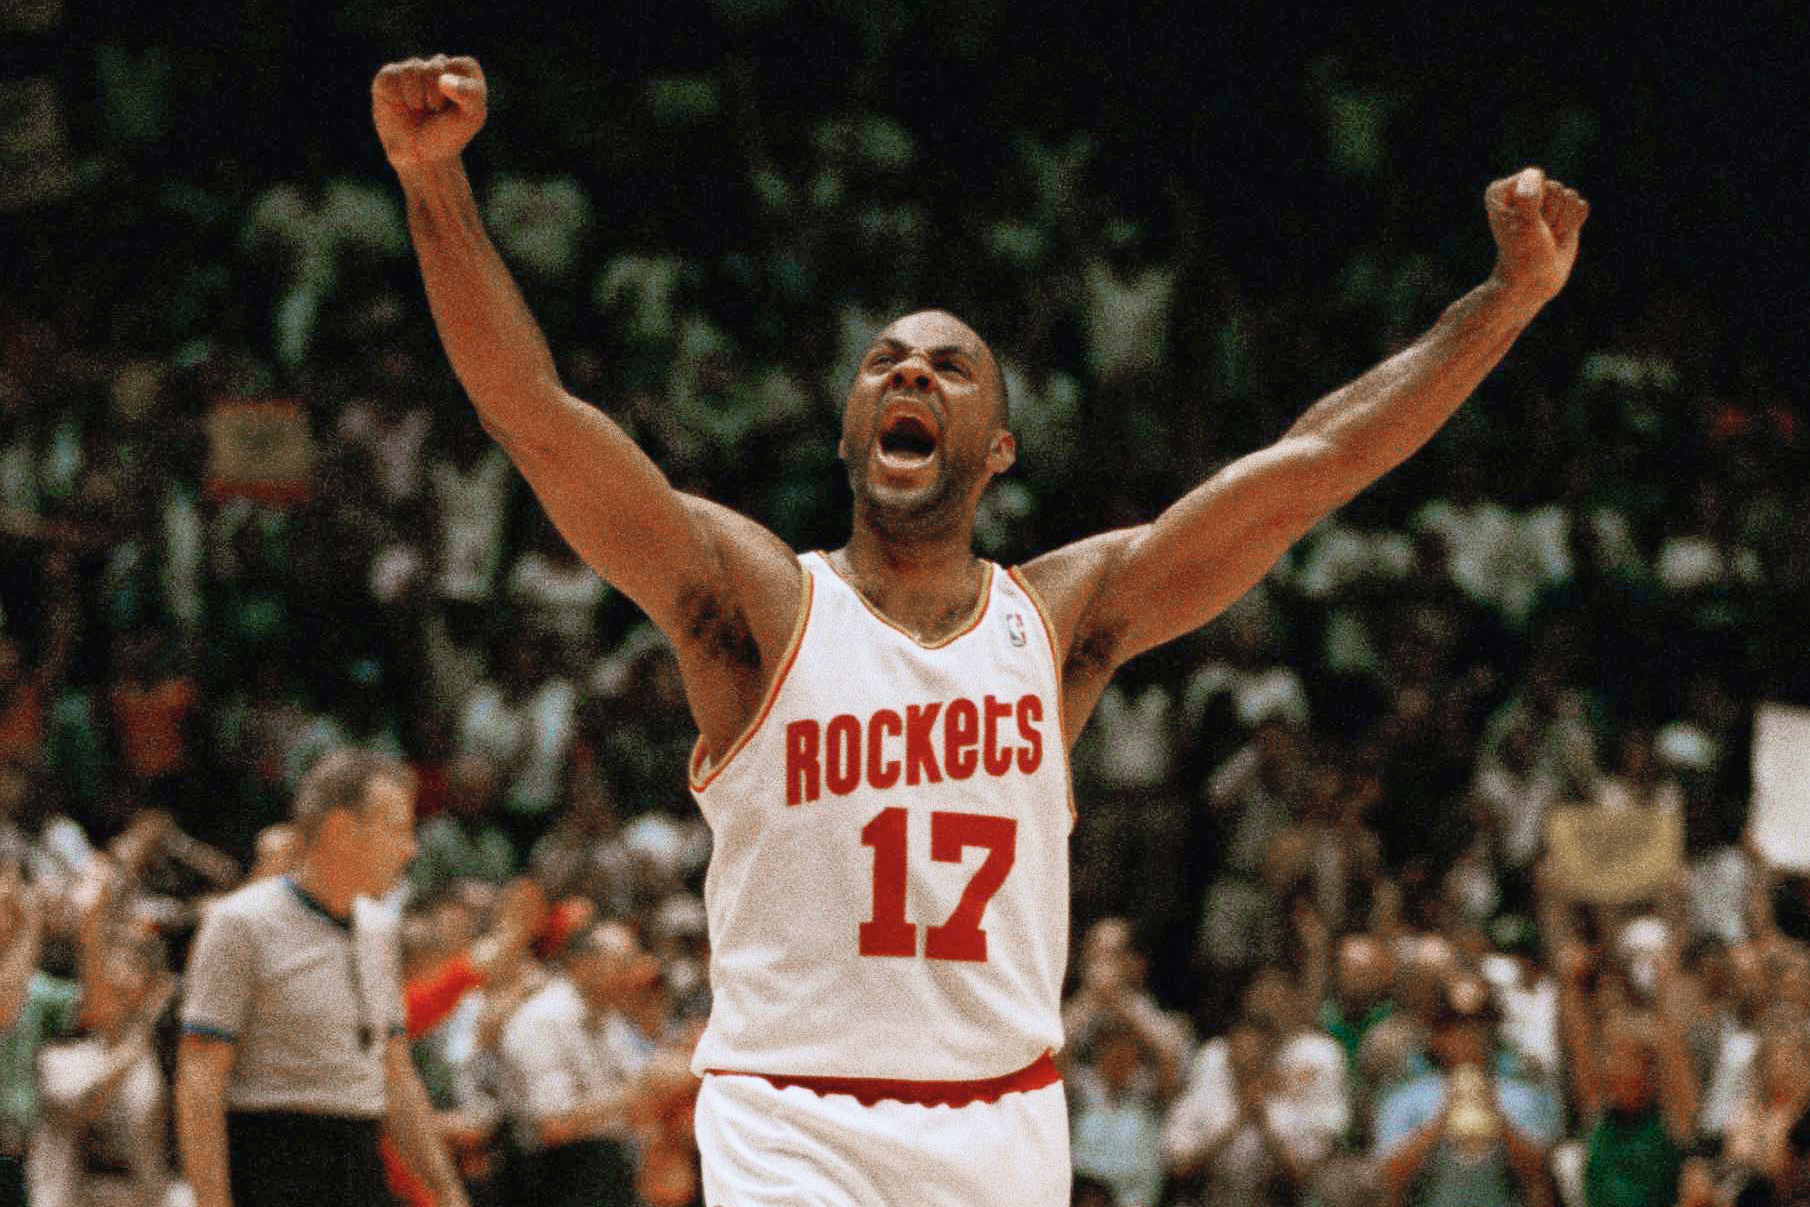 Houston Rockets Mario Elie celebrates during the closing minutes of their NBA Western Conference semifinal game against the Phoenix Suns, Saturday, May 21, 1994, Houston, Tex.